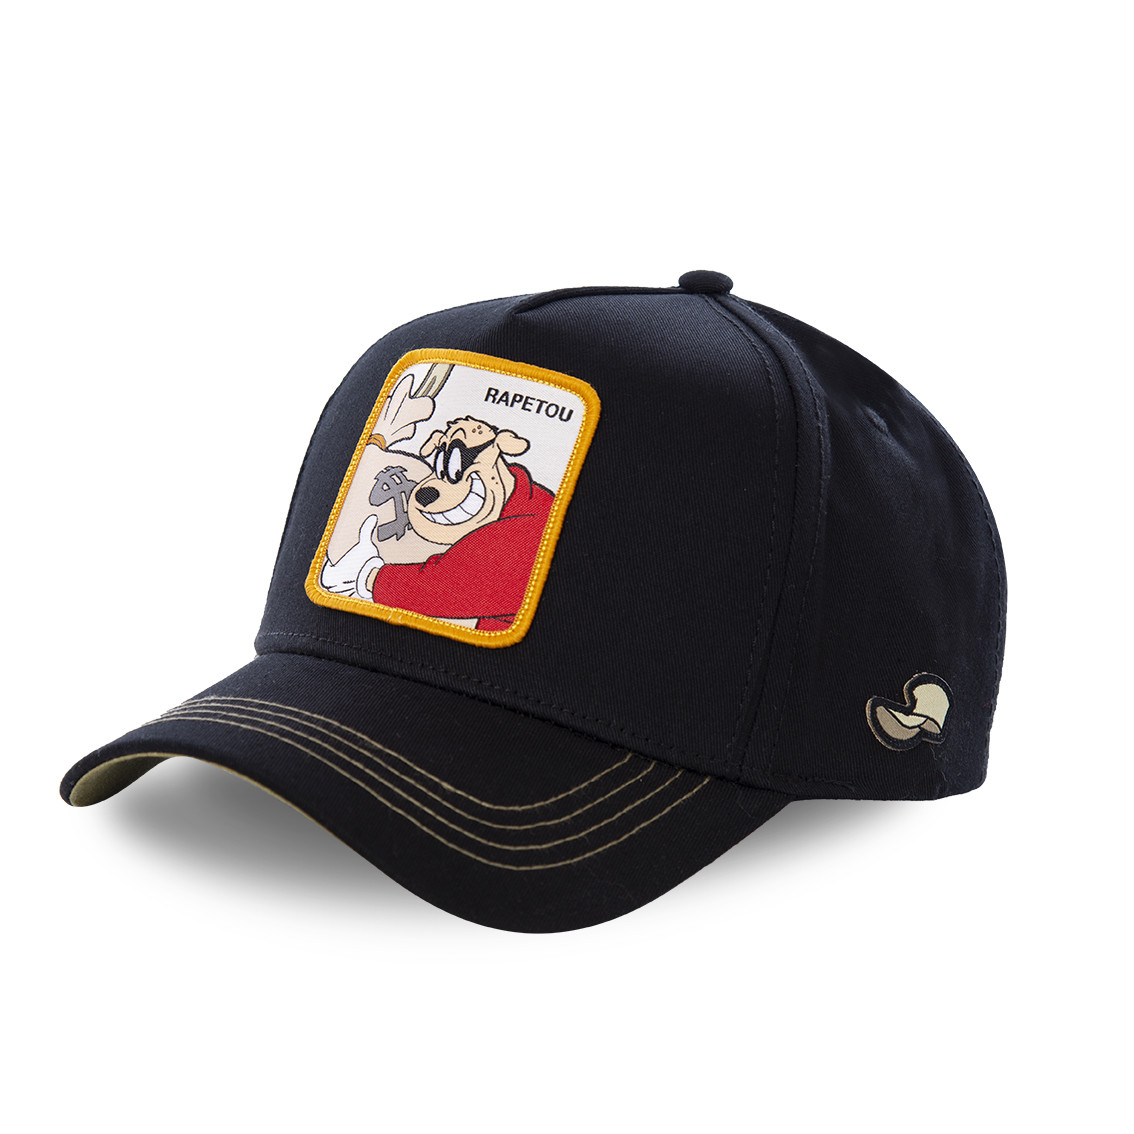 Casquette capslab disney rapetou noir (photo)